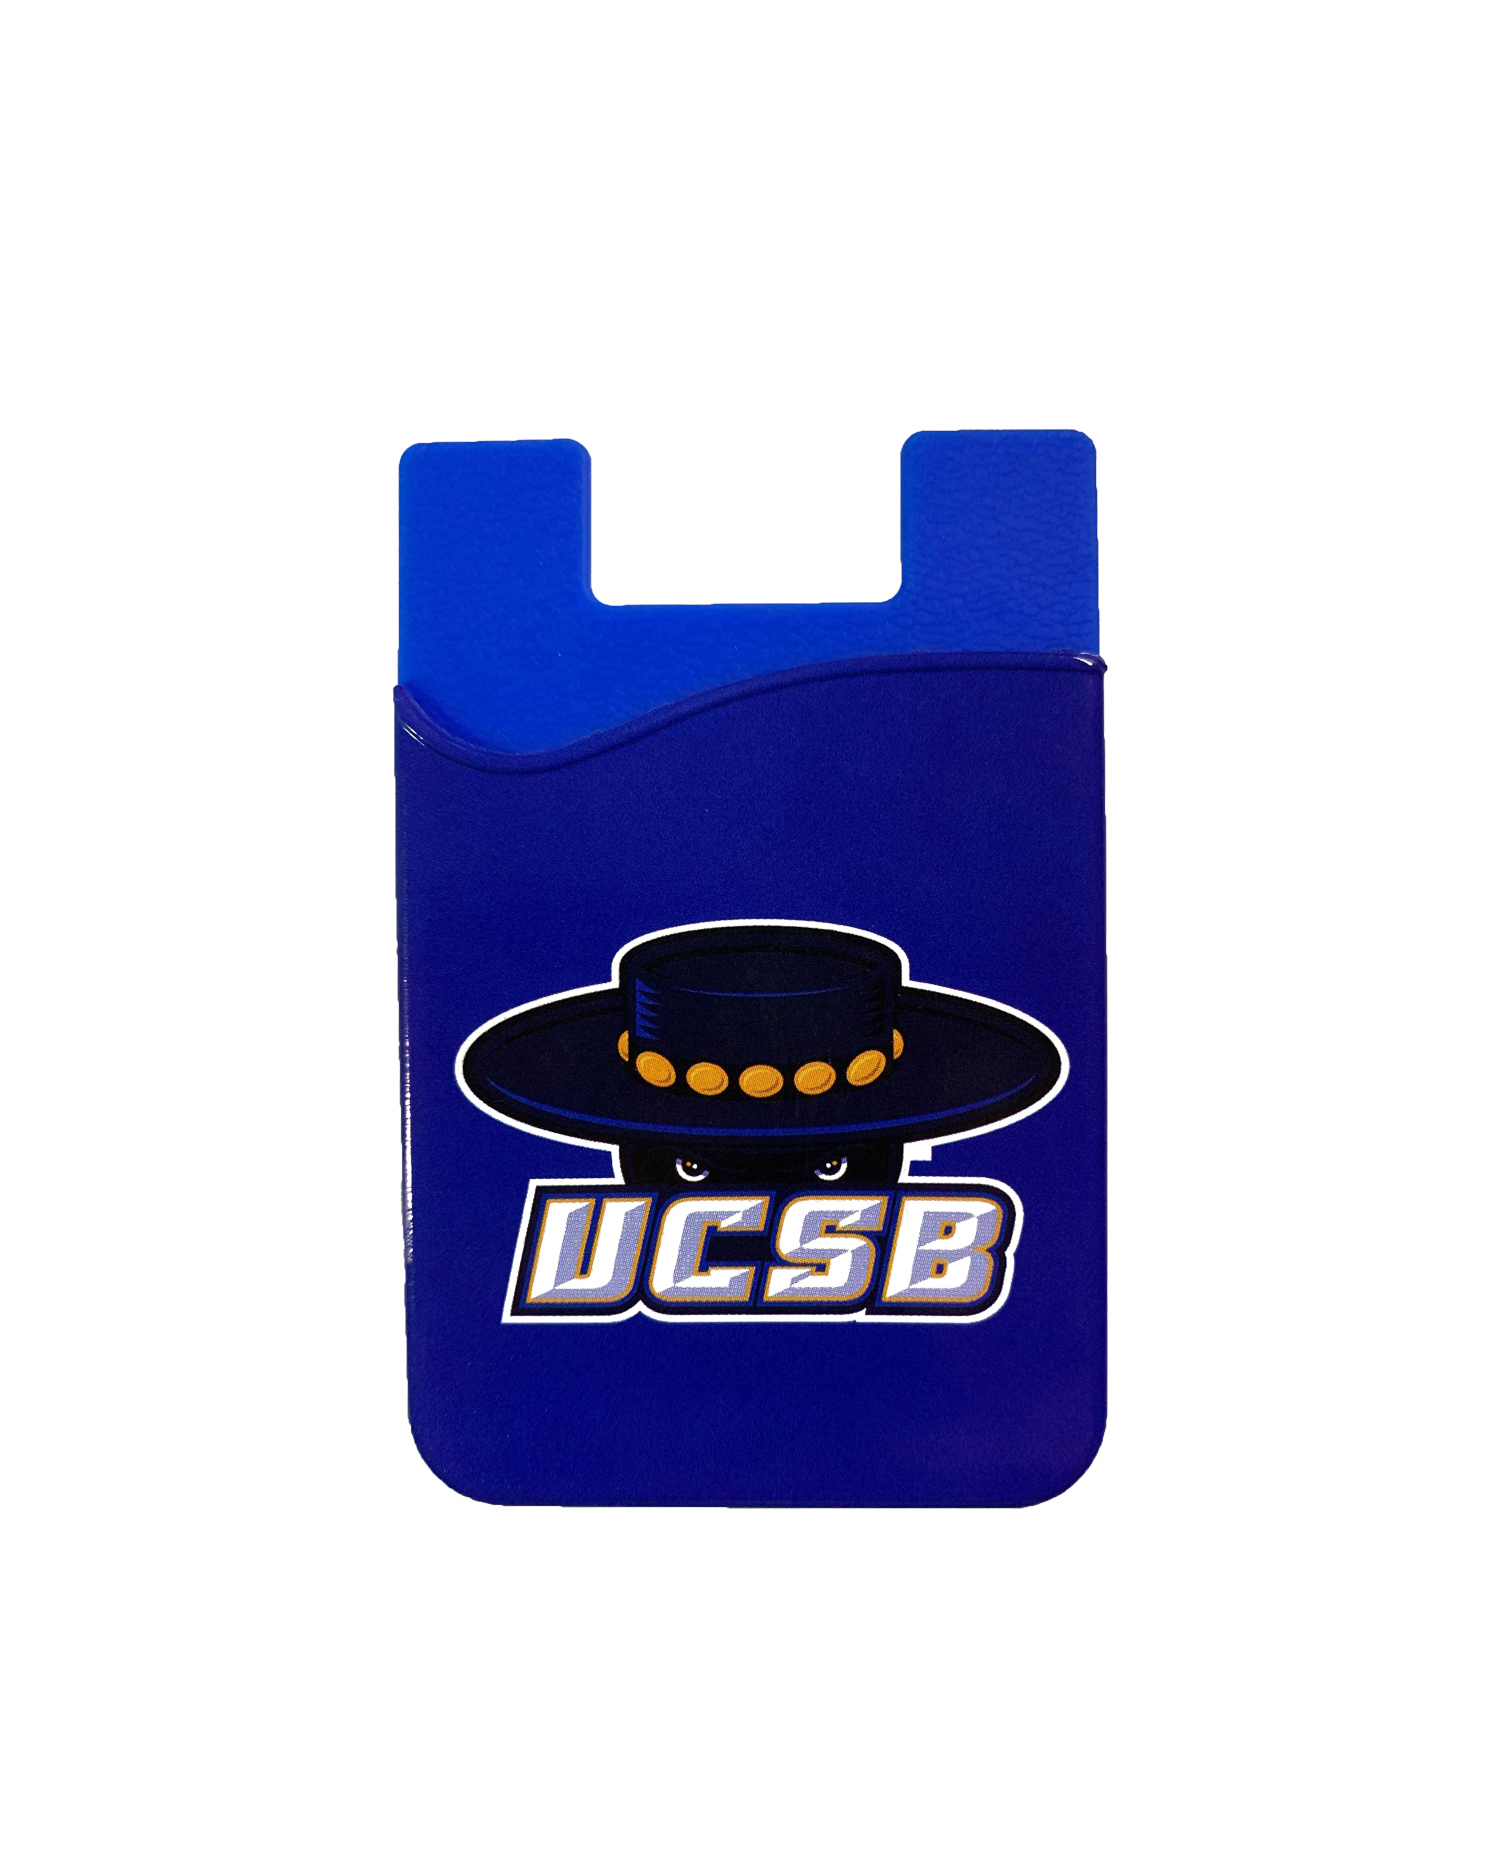 Custom phone wallet with logo